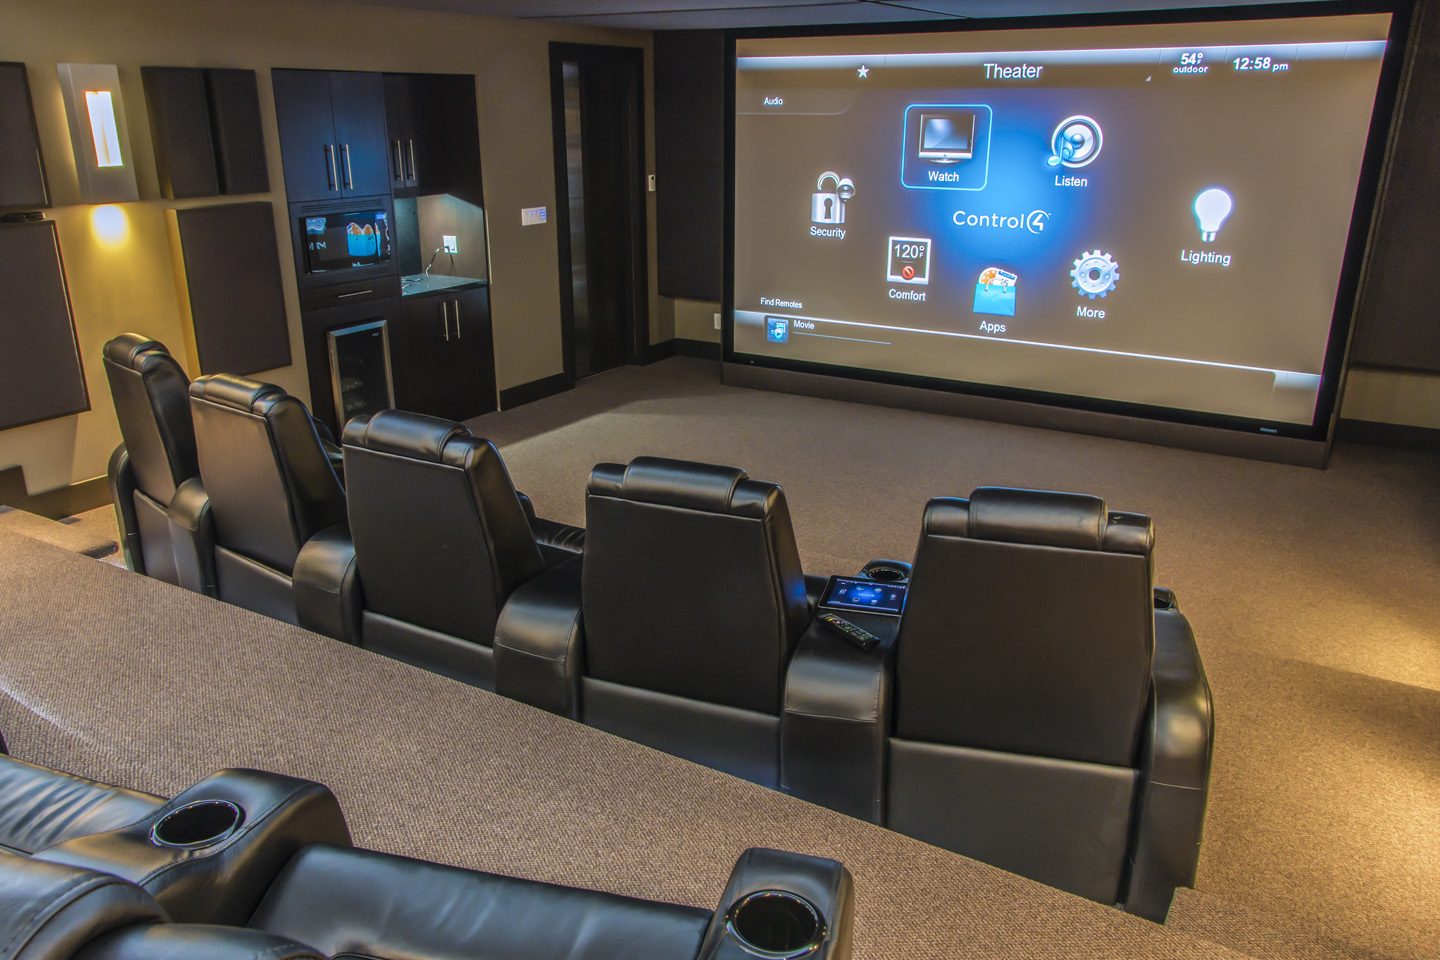 Control4 Wiring For Home Theater Great Installation Of Audio Design Premier Smart Homes Take Control Rh Premiersmarthomes Ca Subwoofer Room